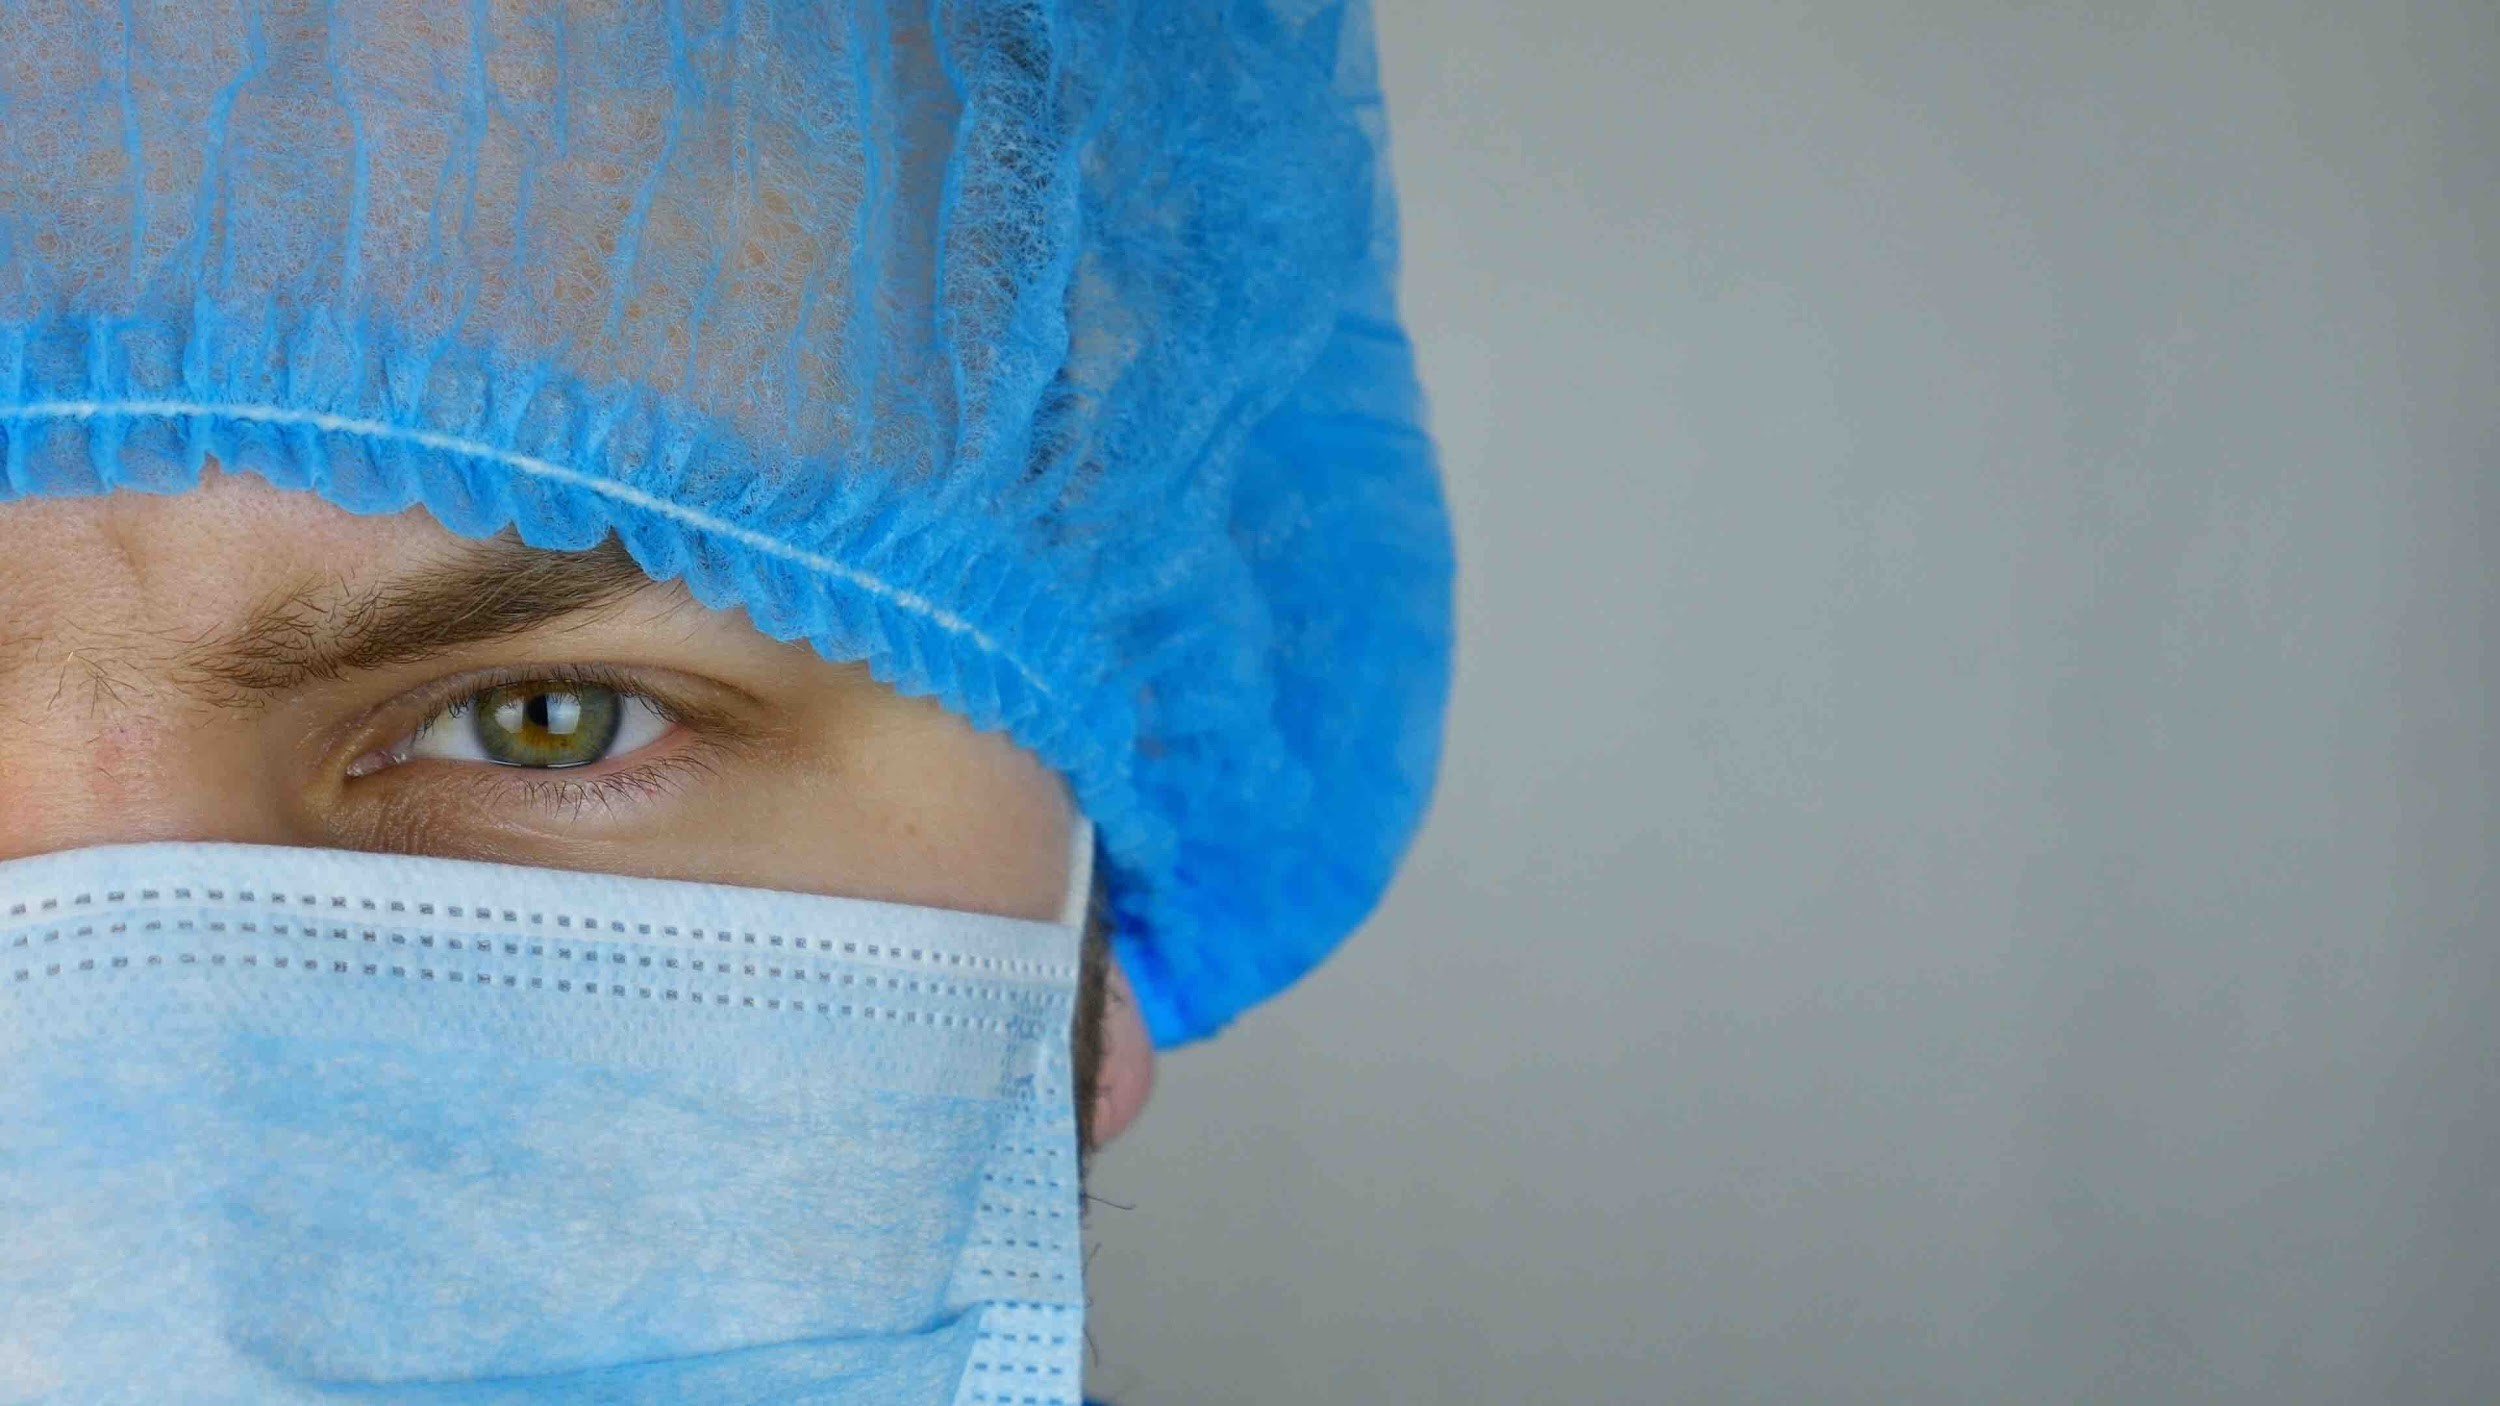 Is it Important to Distinguish Between Types of Medical Errors?